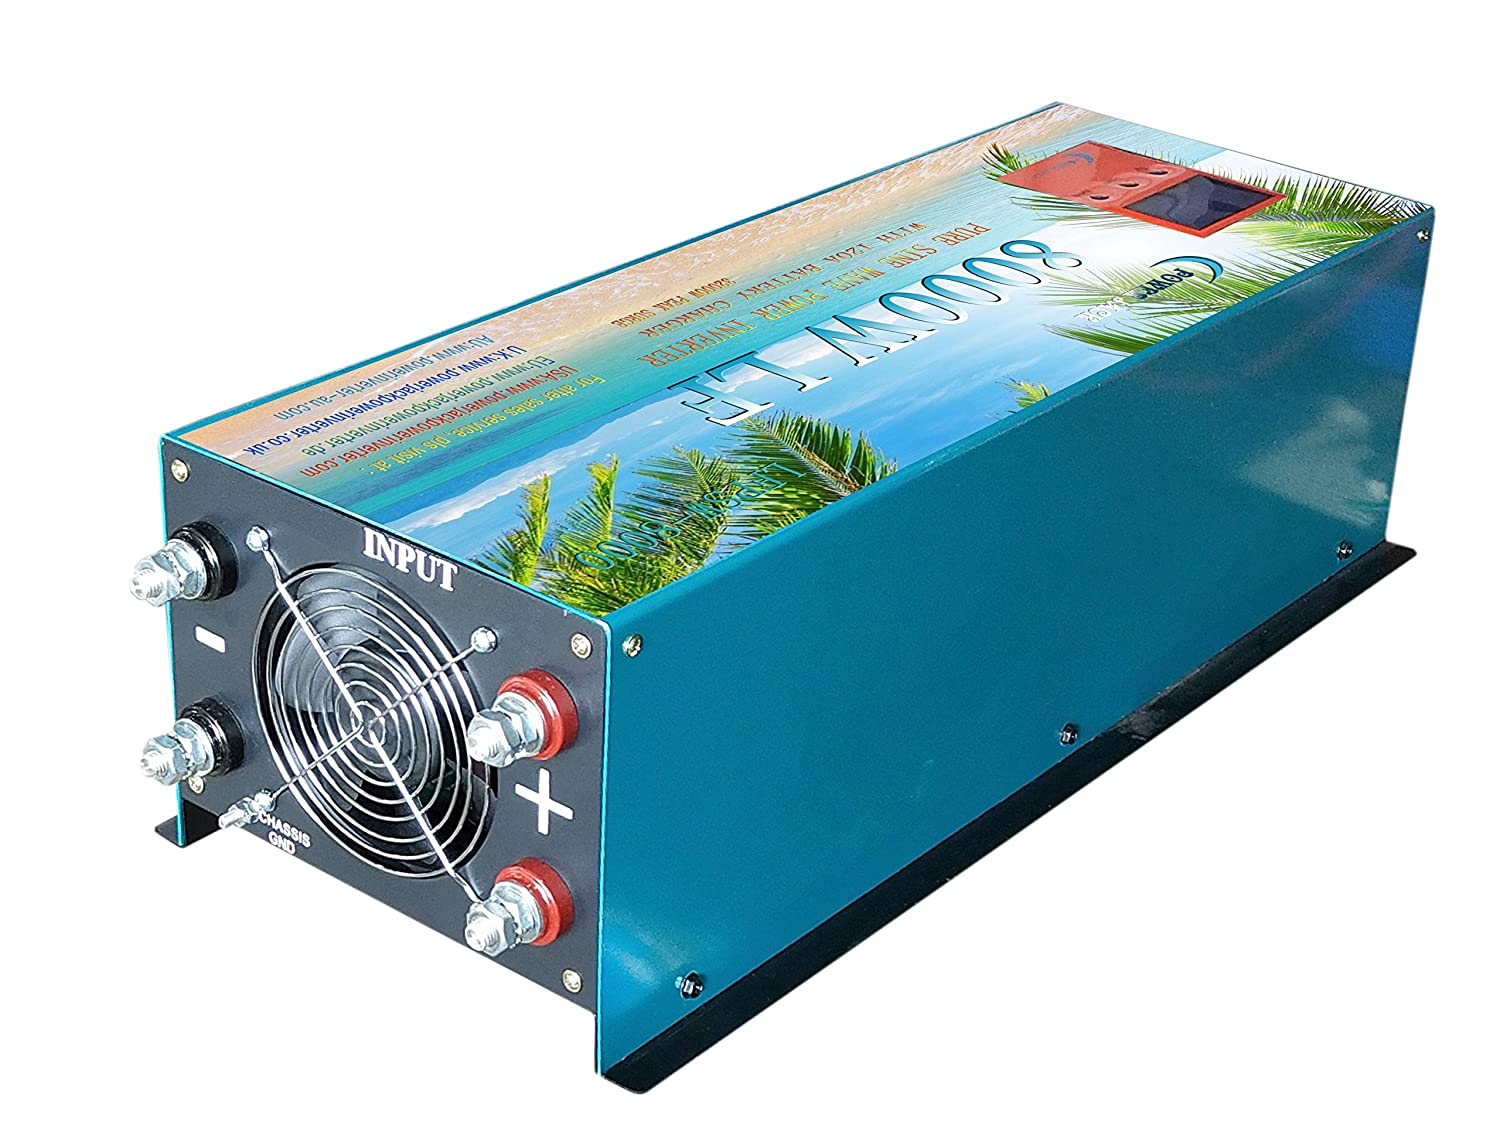 8000W//32000W LF PURE SINE WAVE POWER INVERTER DC 24V to AC240V 120A Battery Charger UPS,POWER CONVERTER